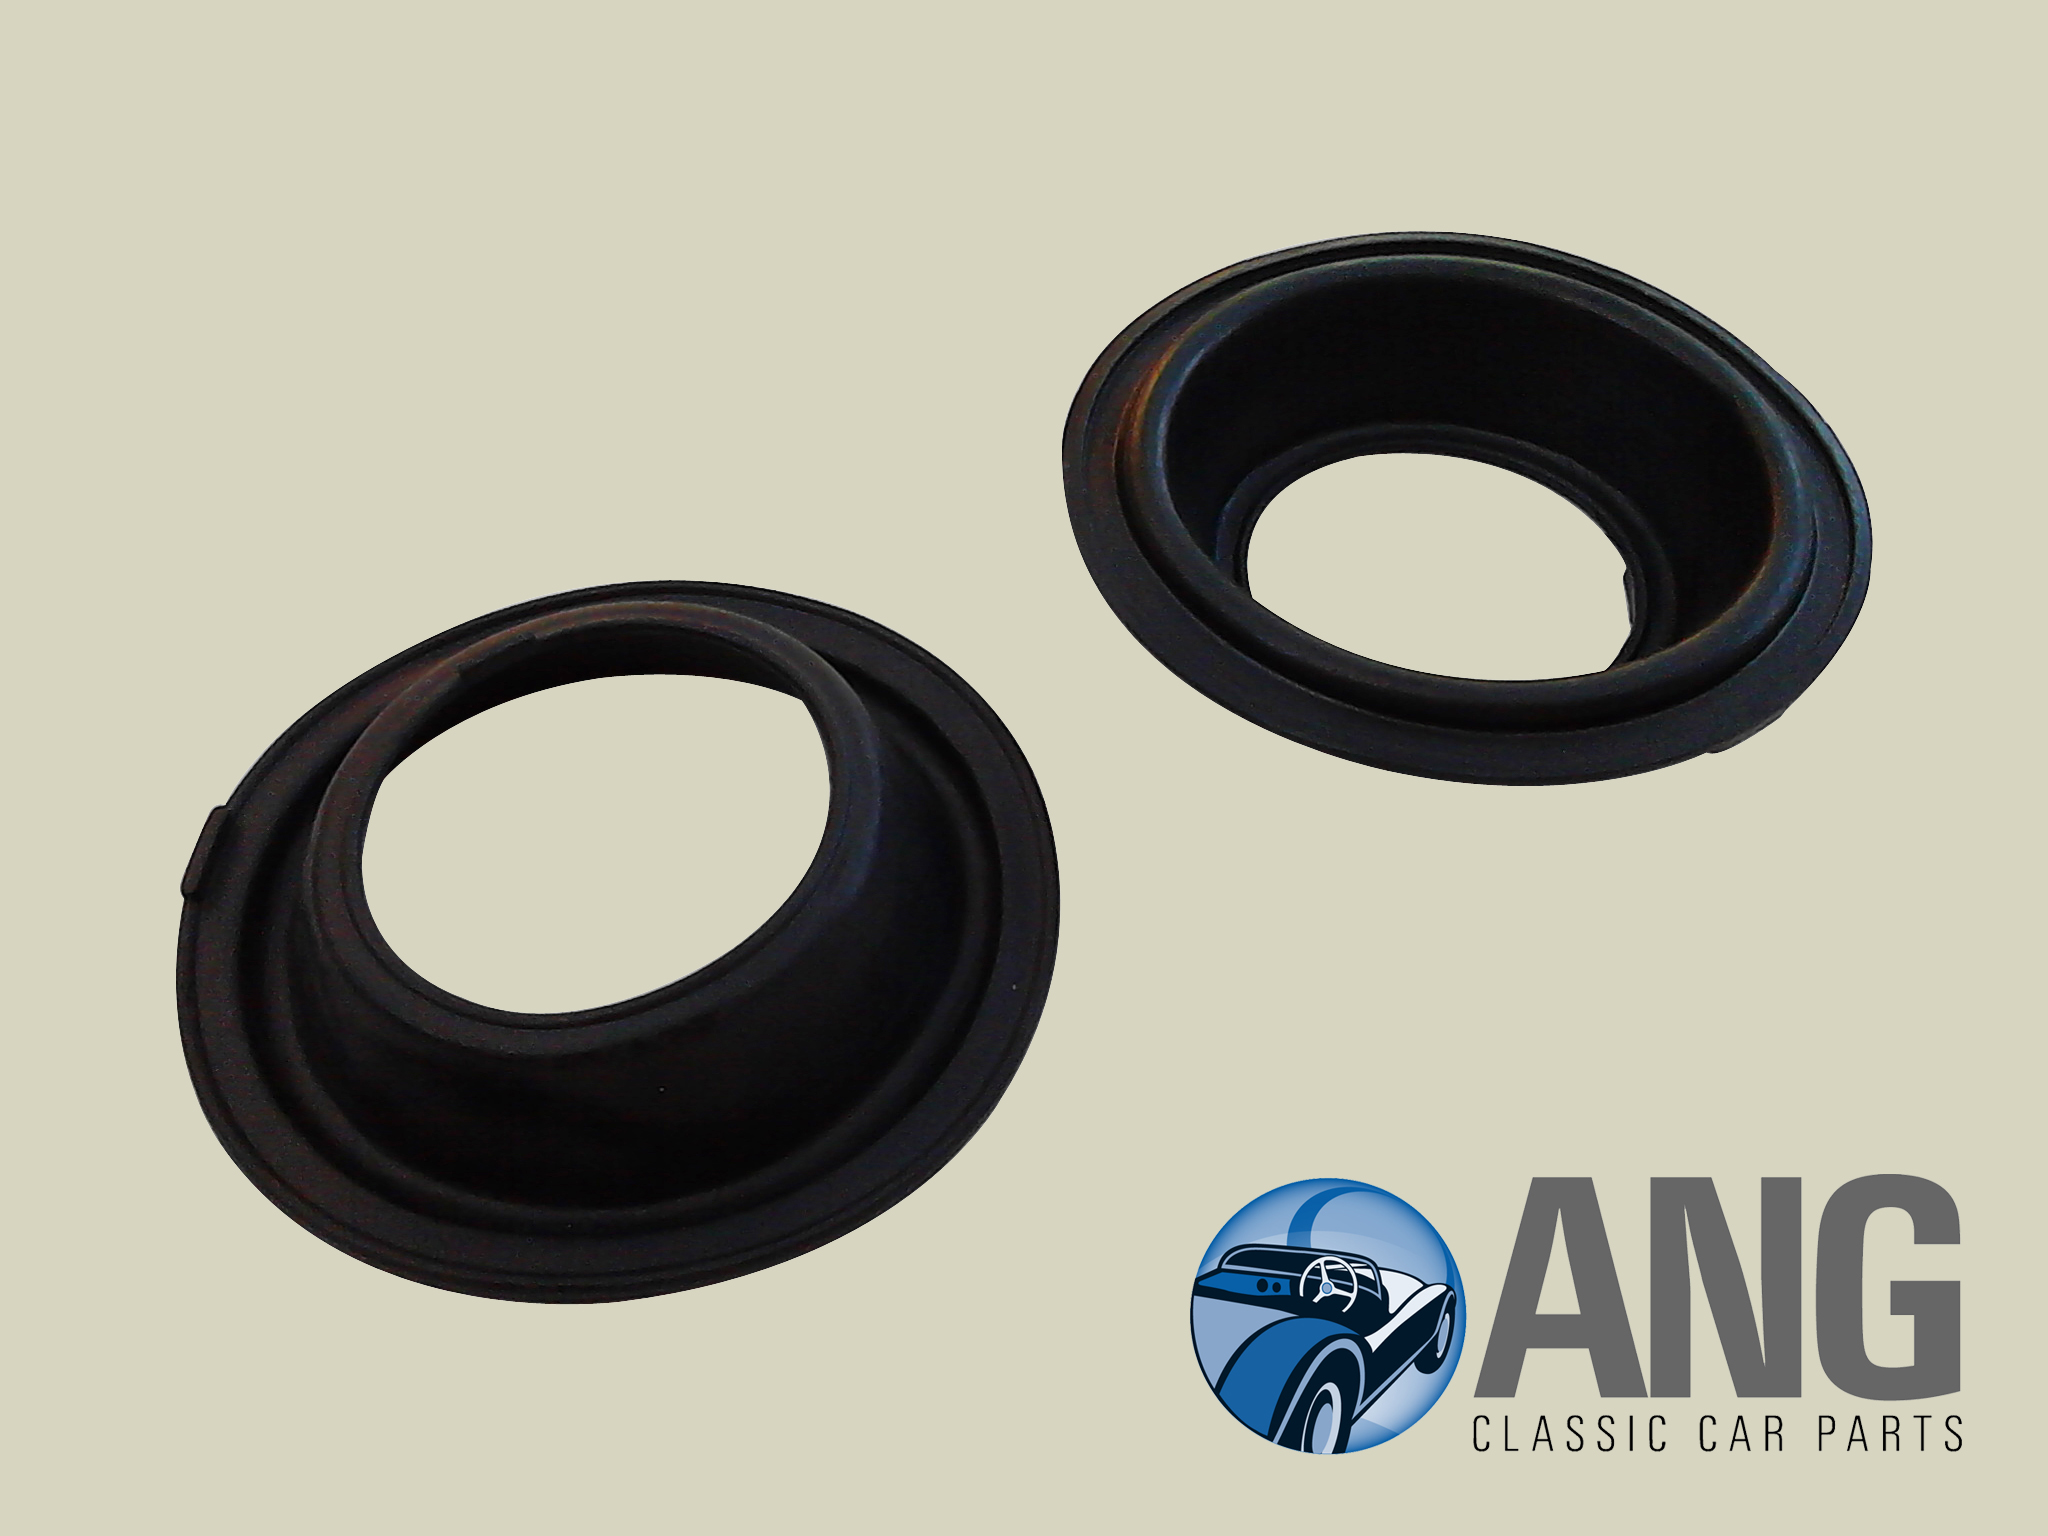 CARBURETTOR DIAPHRAGMS (2) ; E-TYPE SERIES I, II & III